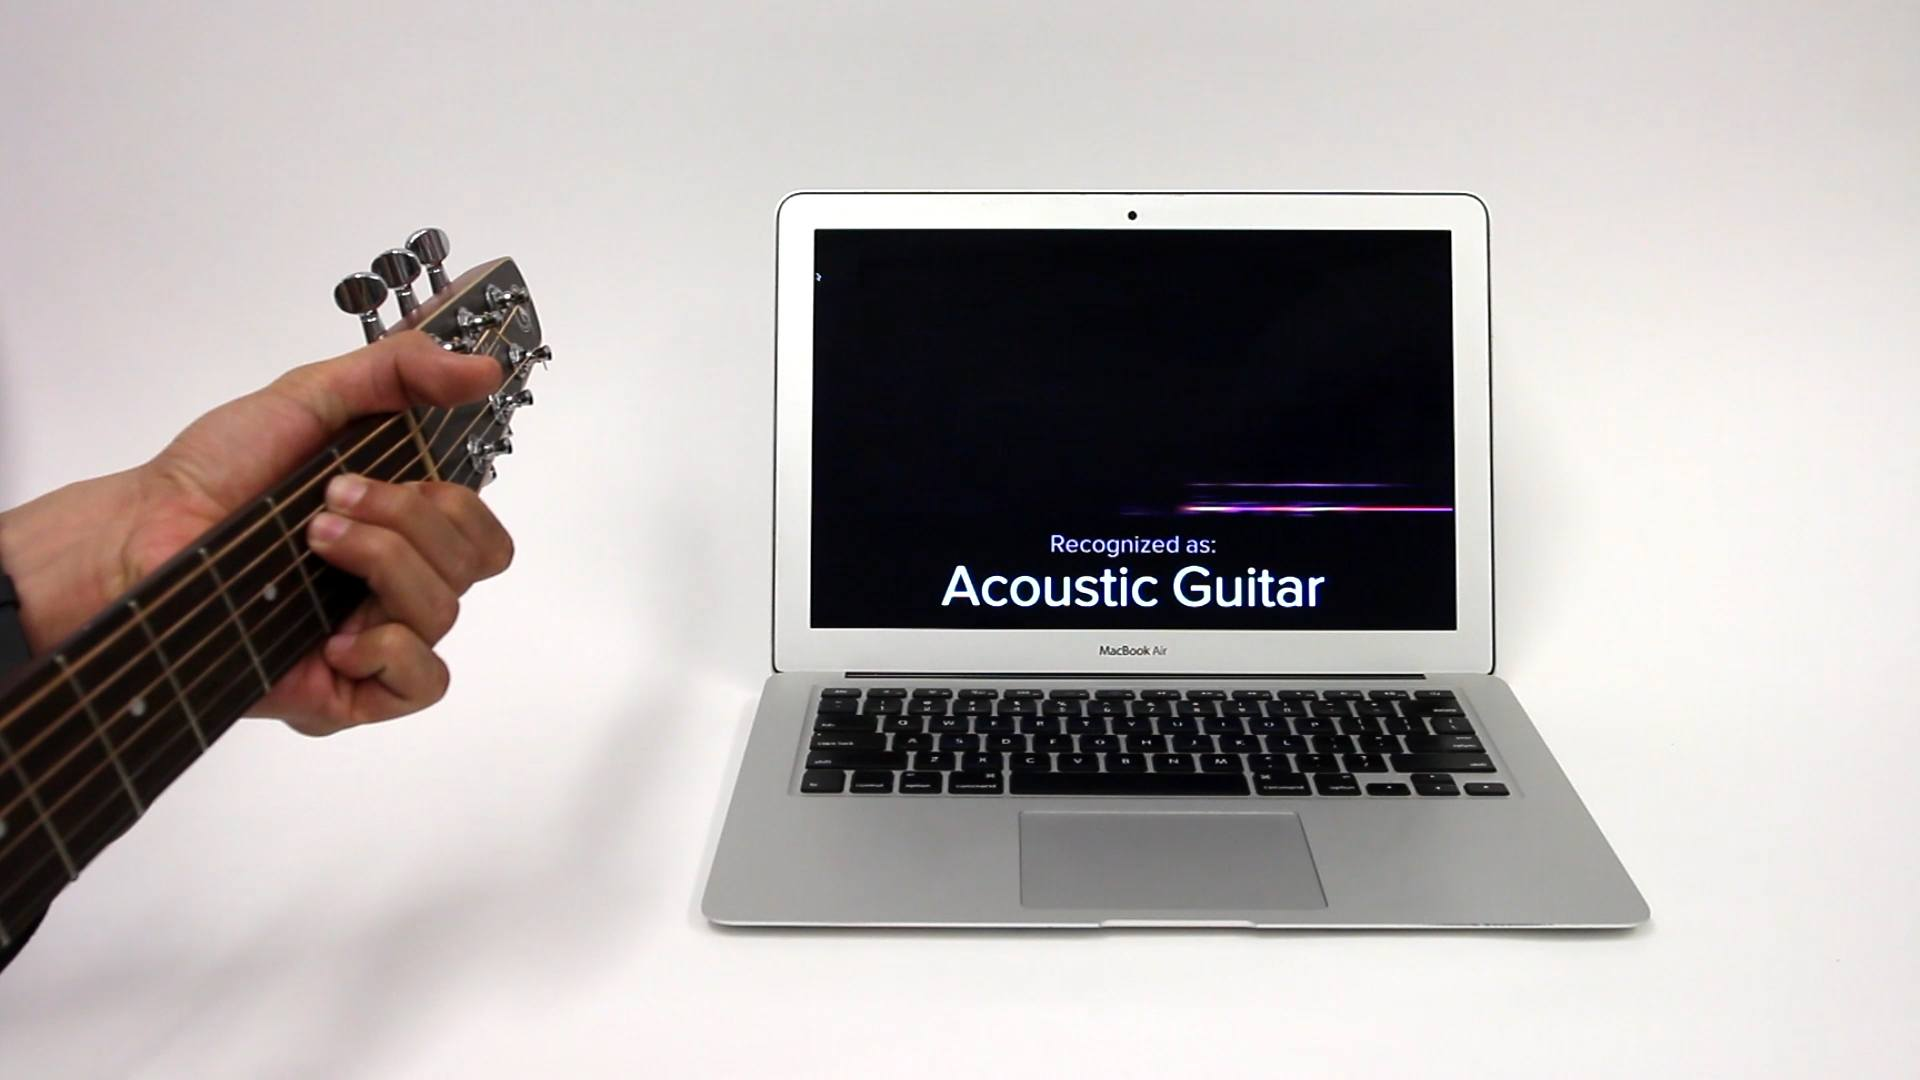 cc_objects_acousticguitar